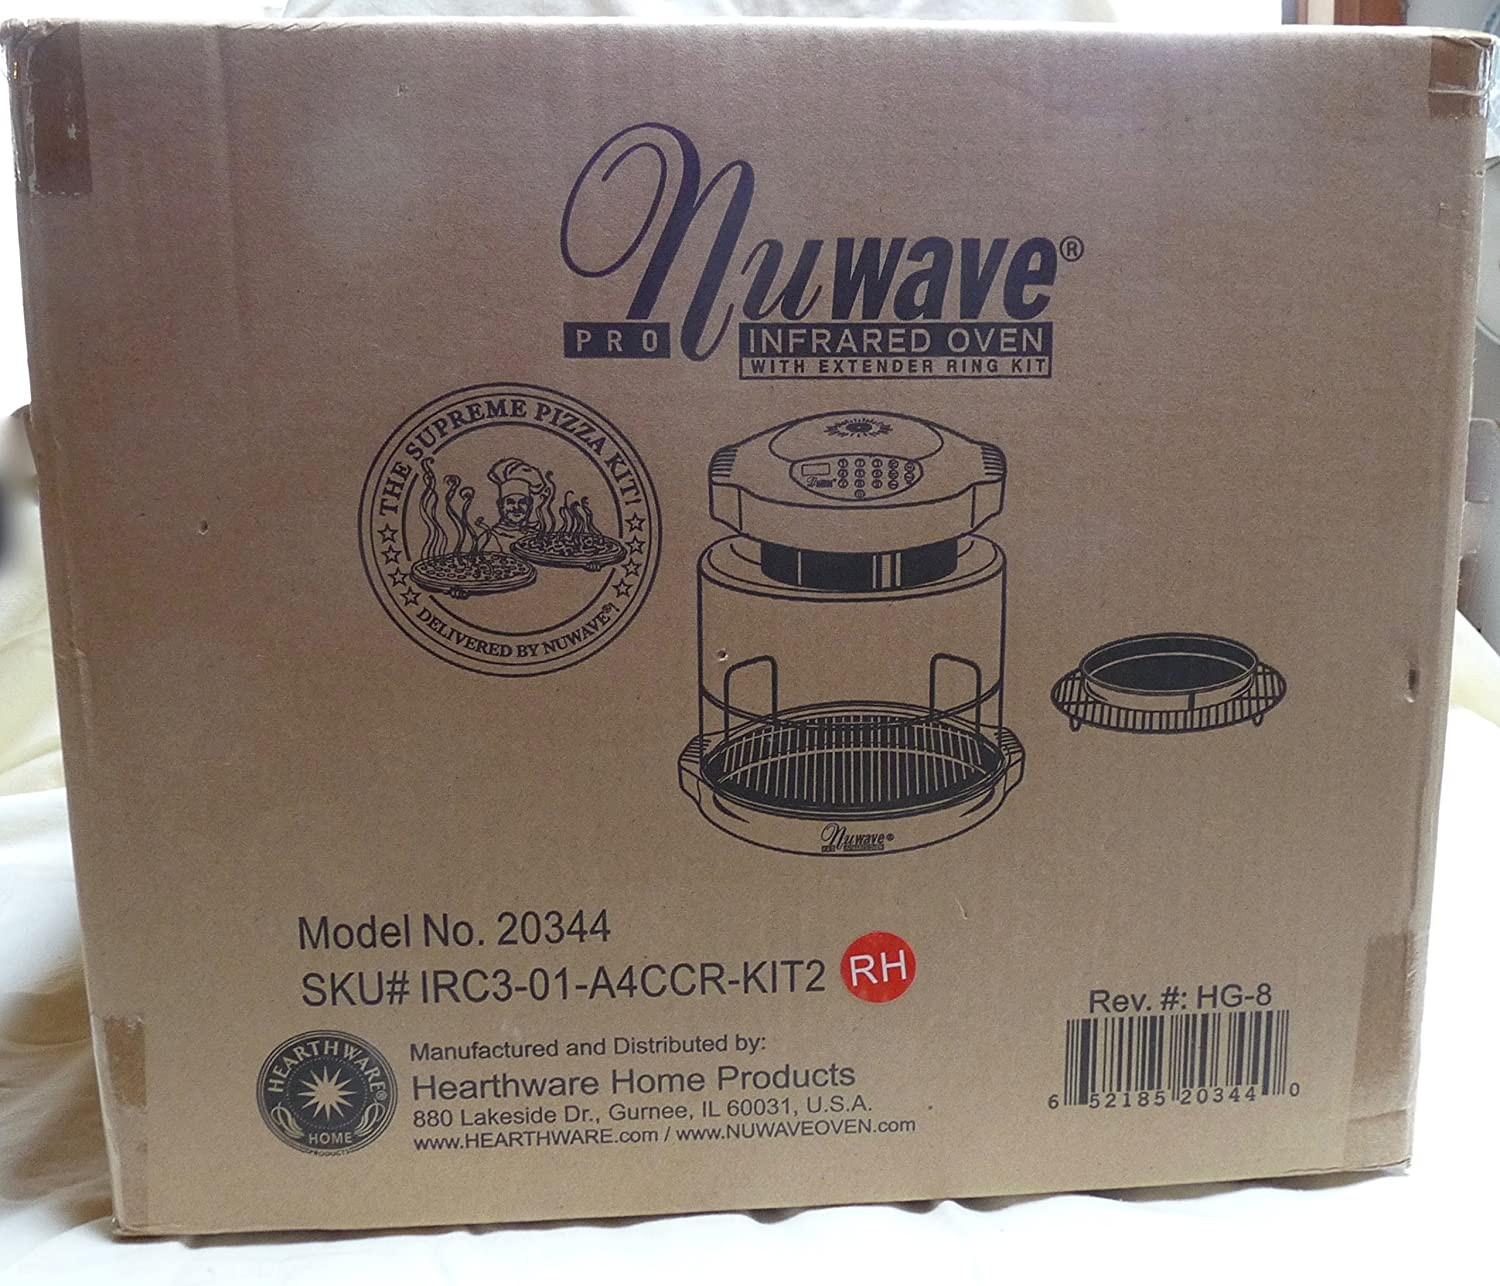 Nuwave Pro Infrared Oven with Extender Ring Kit Model 20344